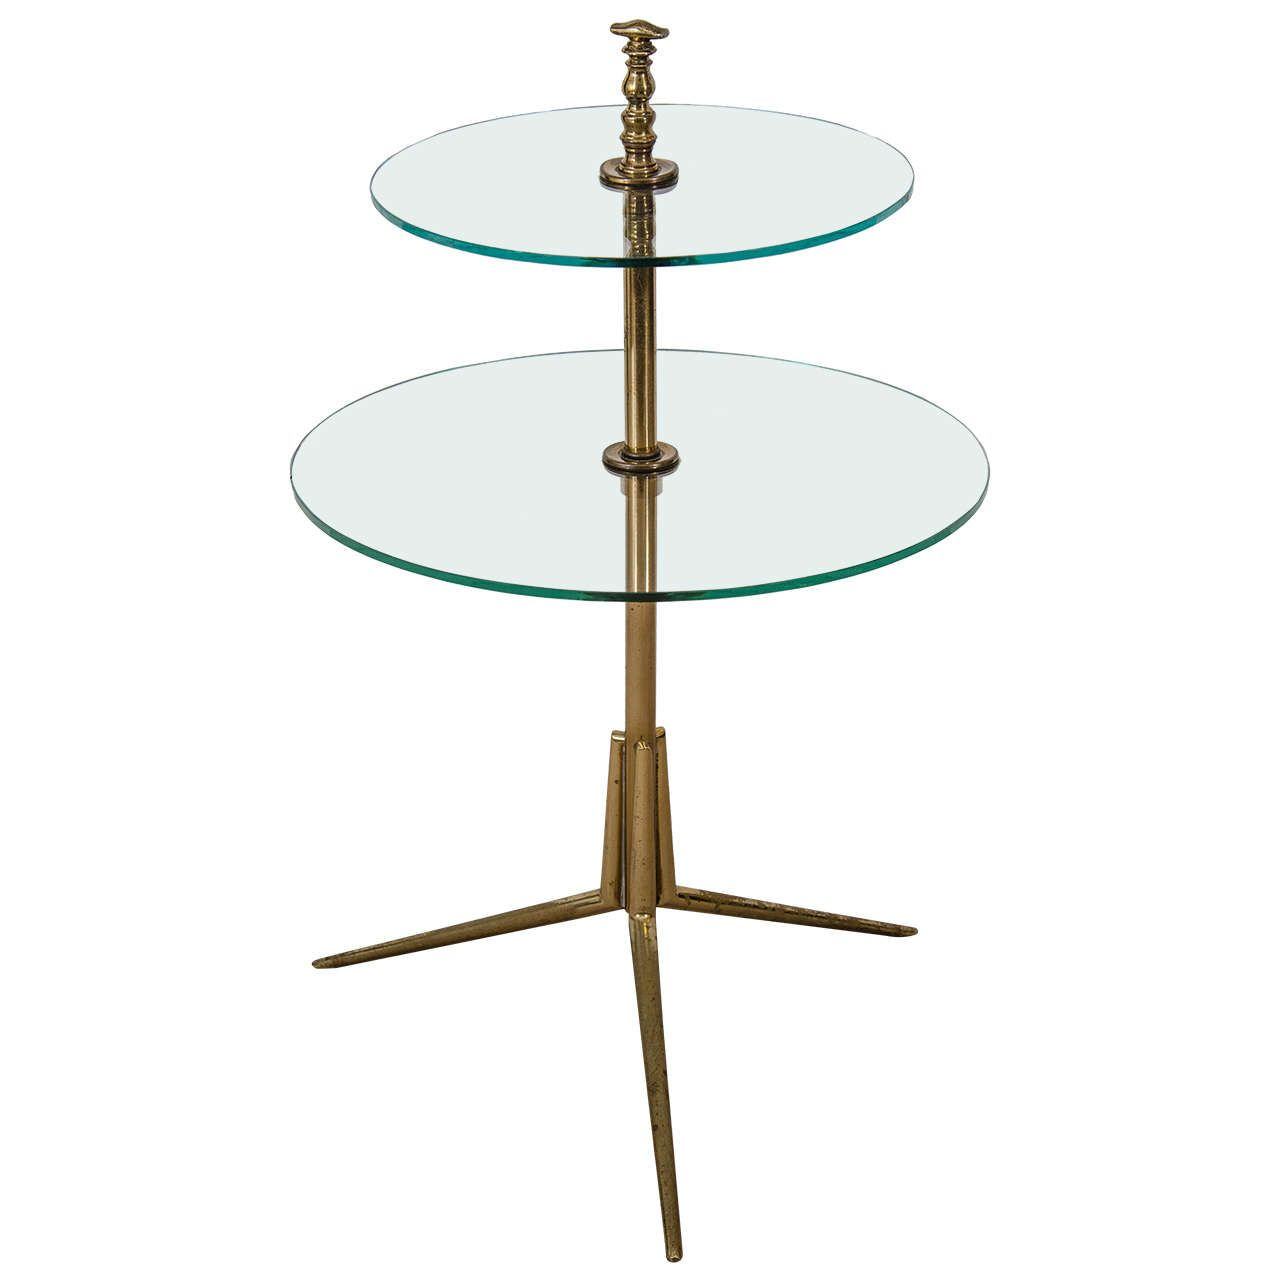 Vintage Modern Brass and Glass Side Table after Gio Ponti Italy